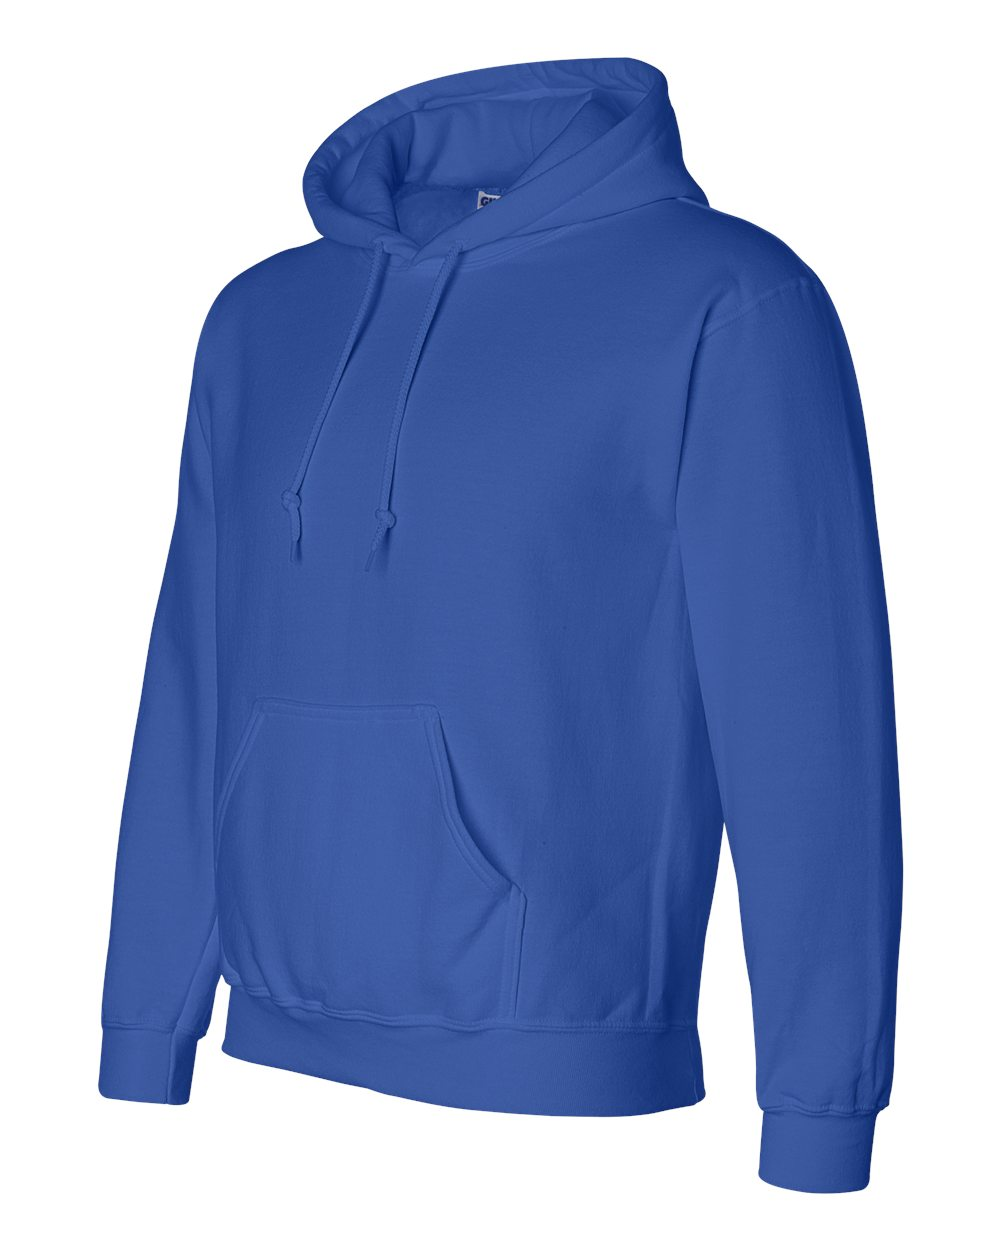 Gildan Ultra Blend Hooded sweater GIL12500 Royal Blue